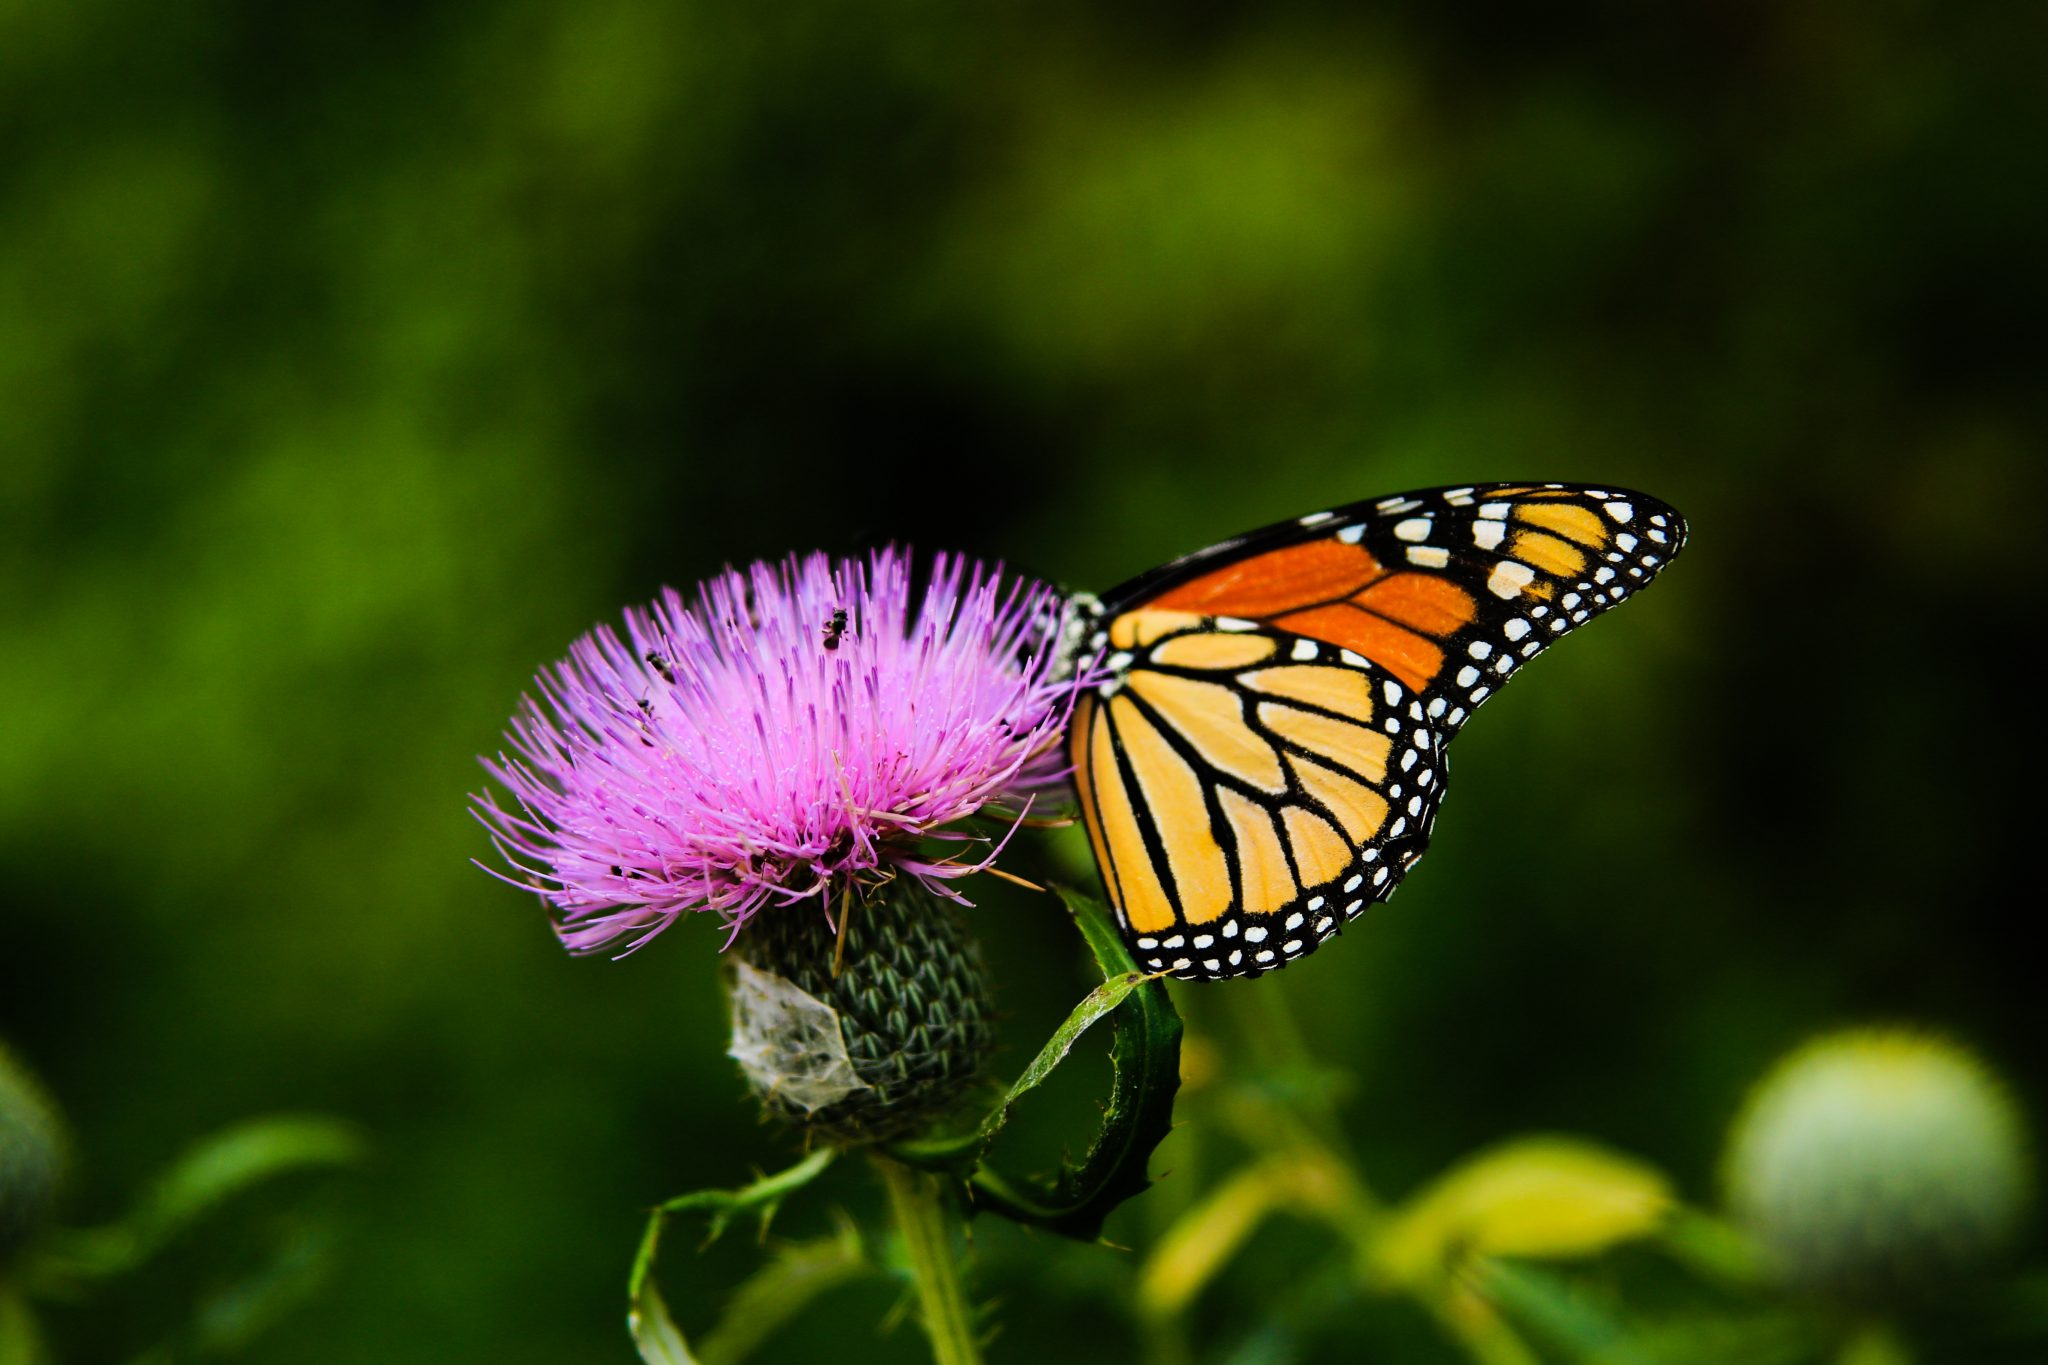 How Chasing Butterflies Can Teach You About Faith